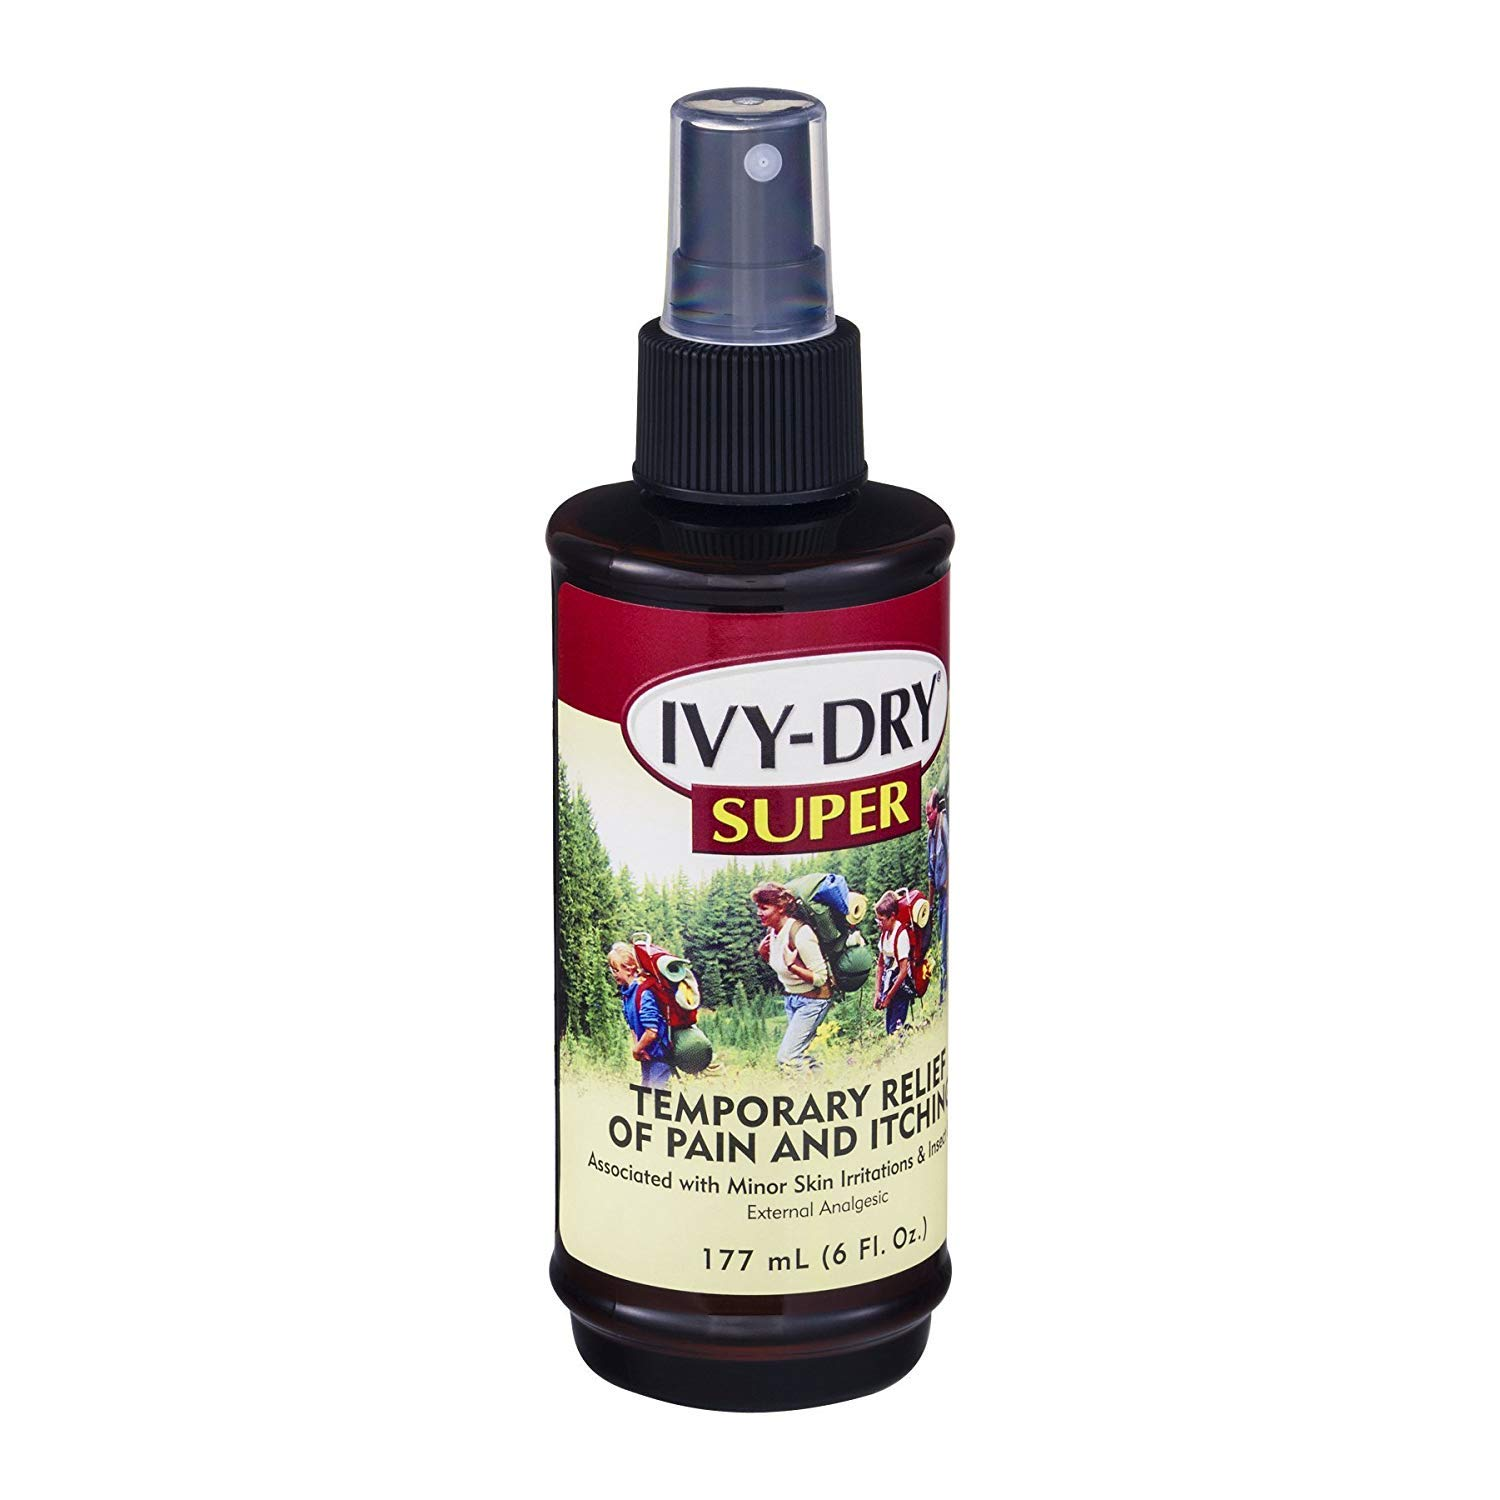 Ivy-Dry Super Itch Relief Spray - 6 oz, Pack of 3